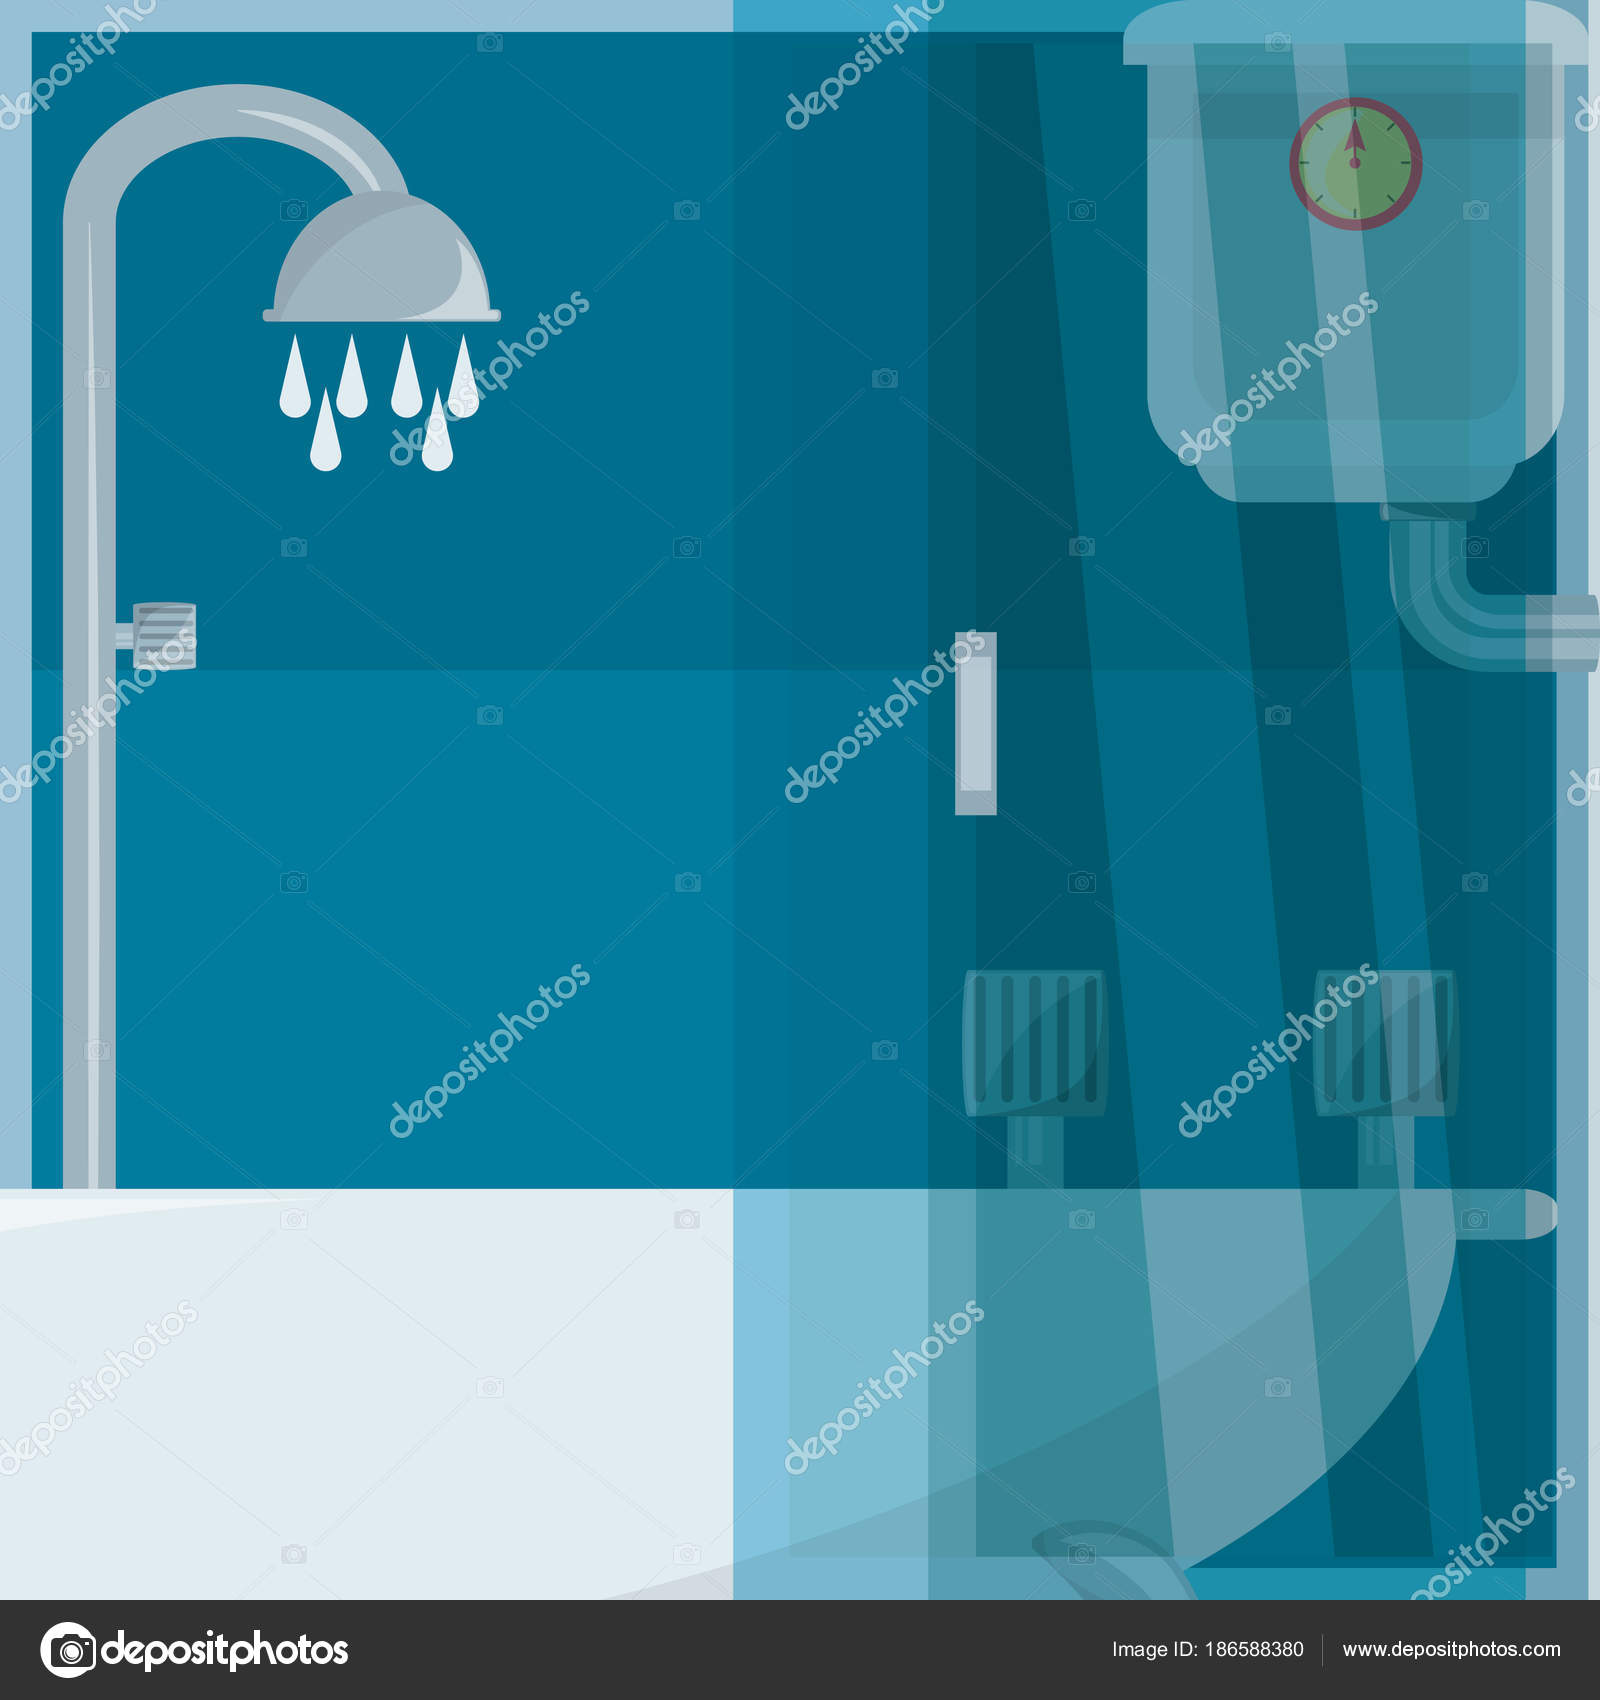 flat set icon shower stall and heating — Stock Vector © djv #186588380